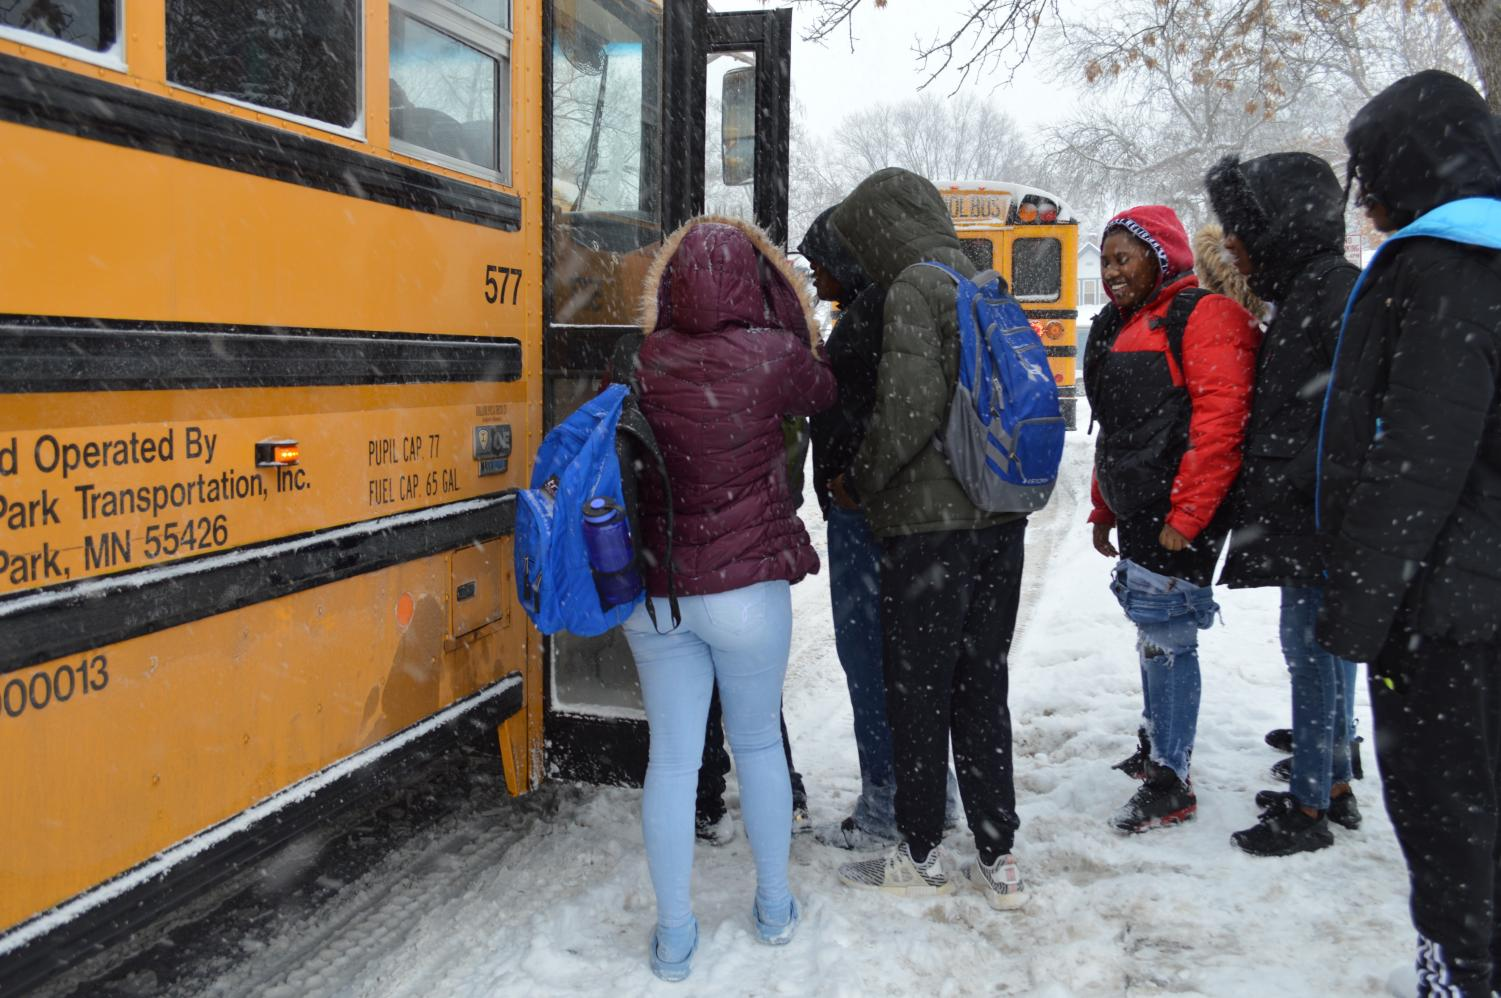 Students file into a school bus after the early dismissal at 2:10 p.m. Feb. 7. Park schools will have a two-hour late start Feb. 8 due to the forecasted winter weather.